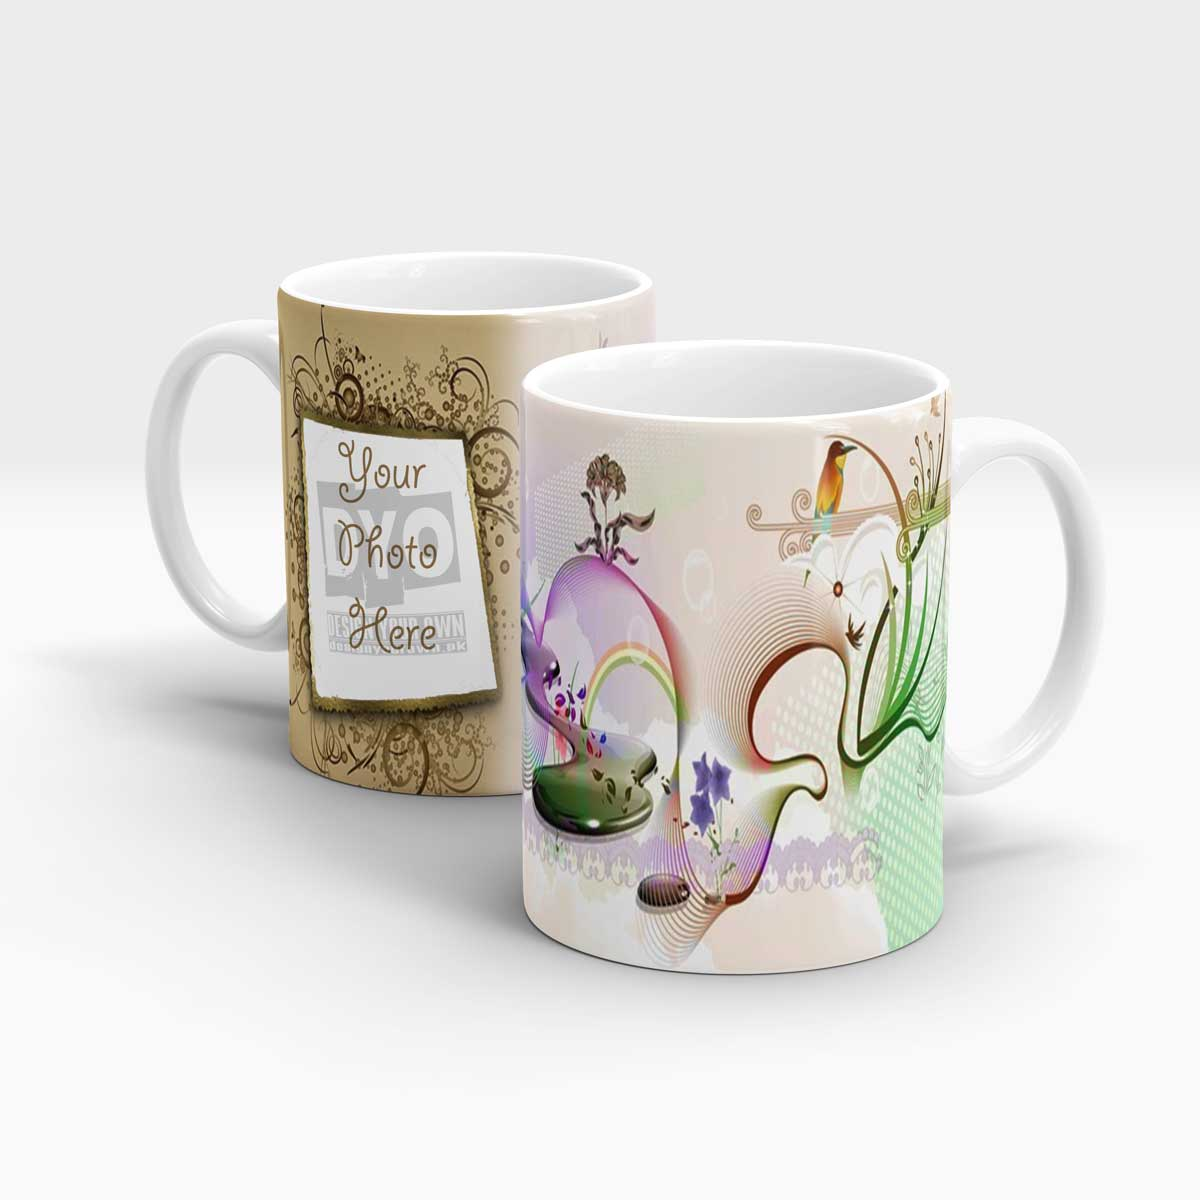 Image result for custom printed mugs